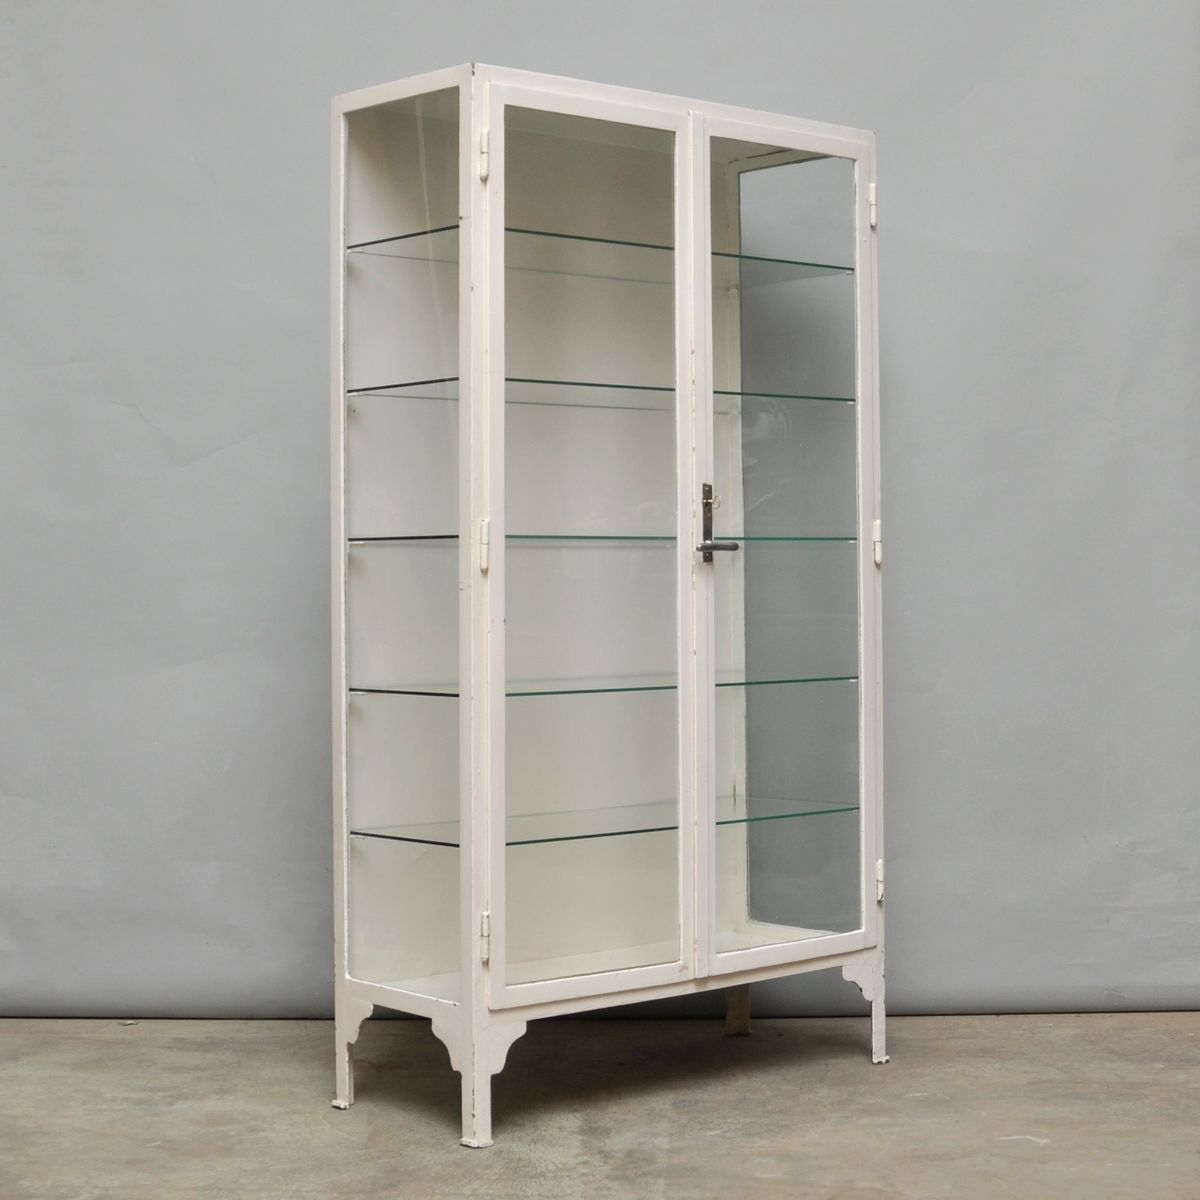 Vintage Steel and Glass Medicine Cabinet, 1940s for sale at Pamono